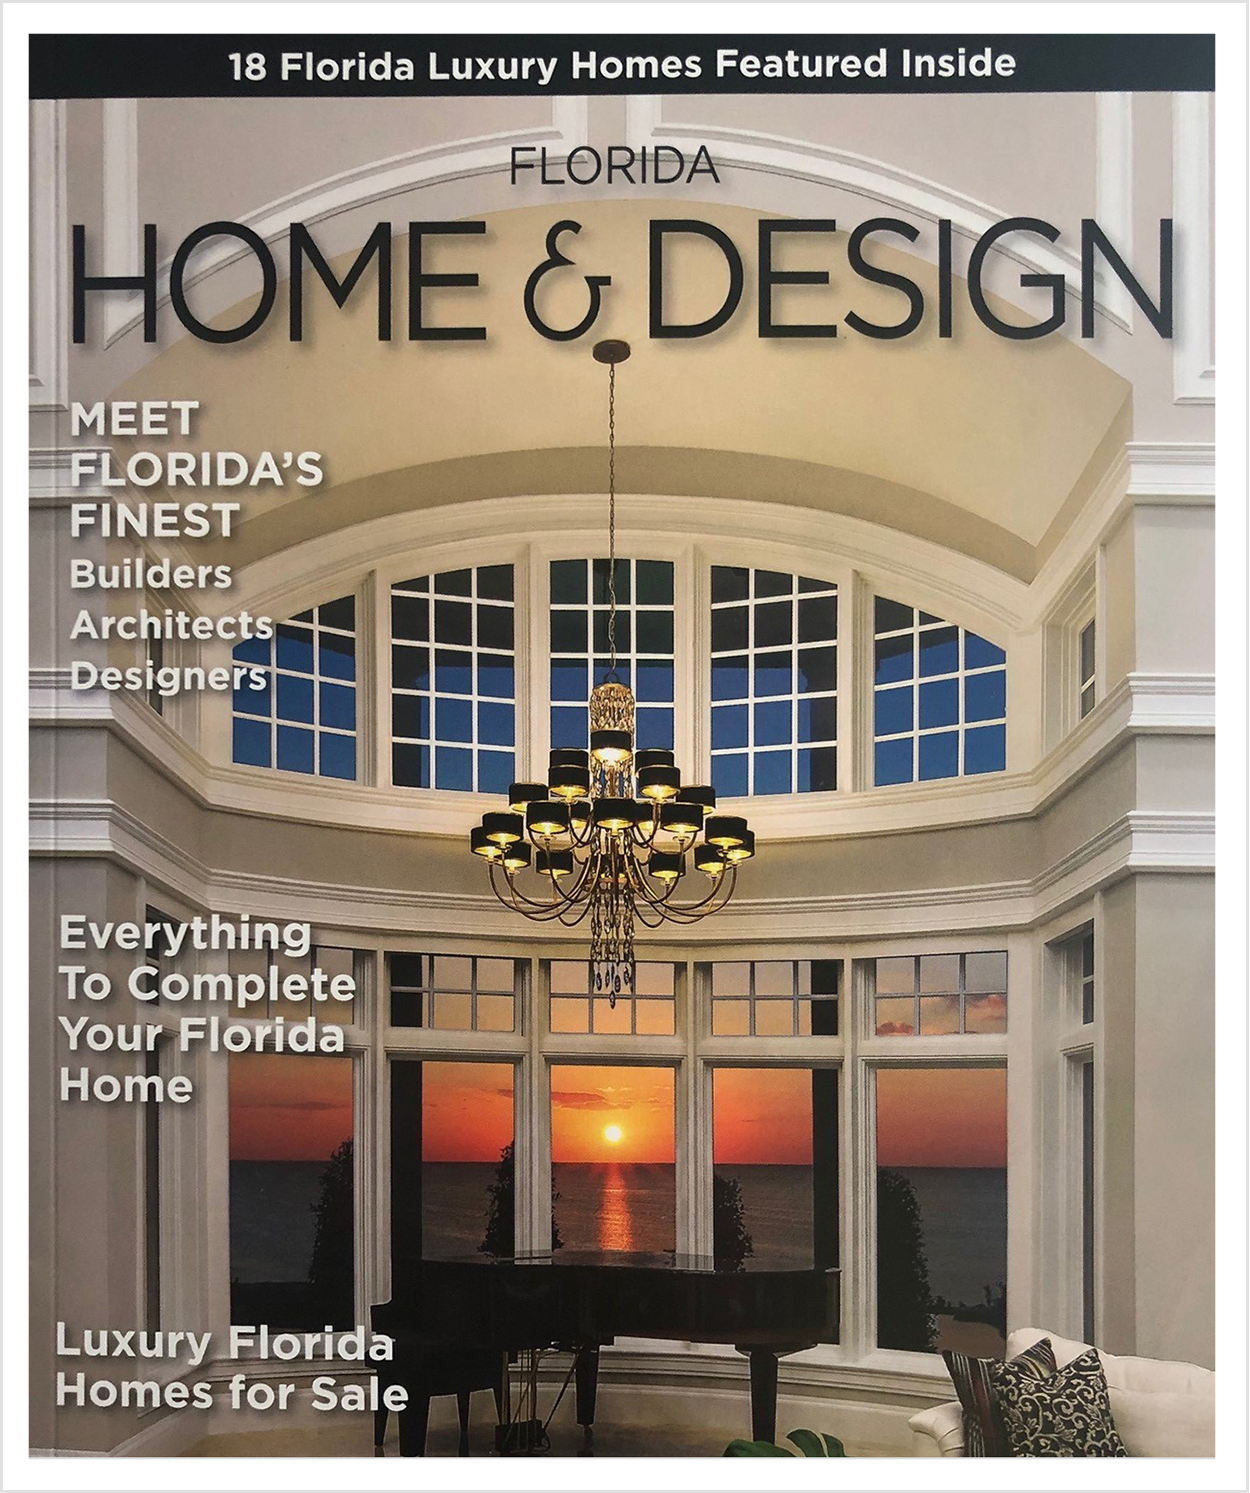 Florida Home & Design October 2017_062819.jpg